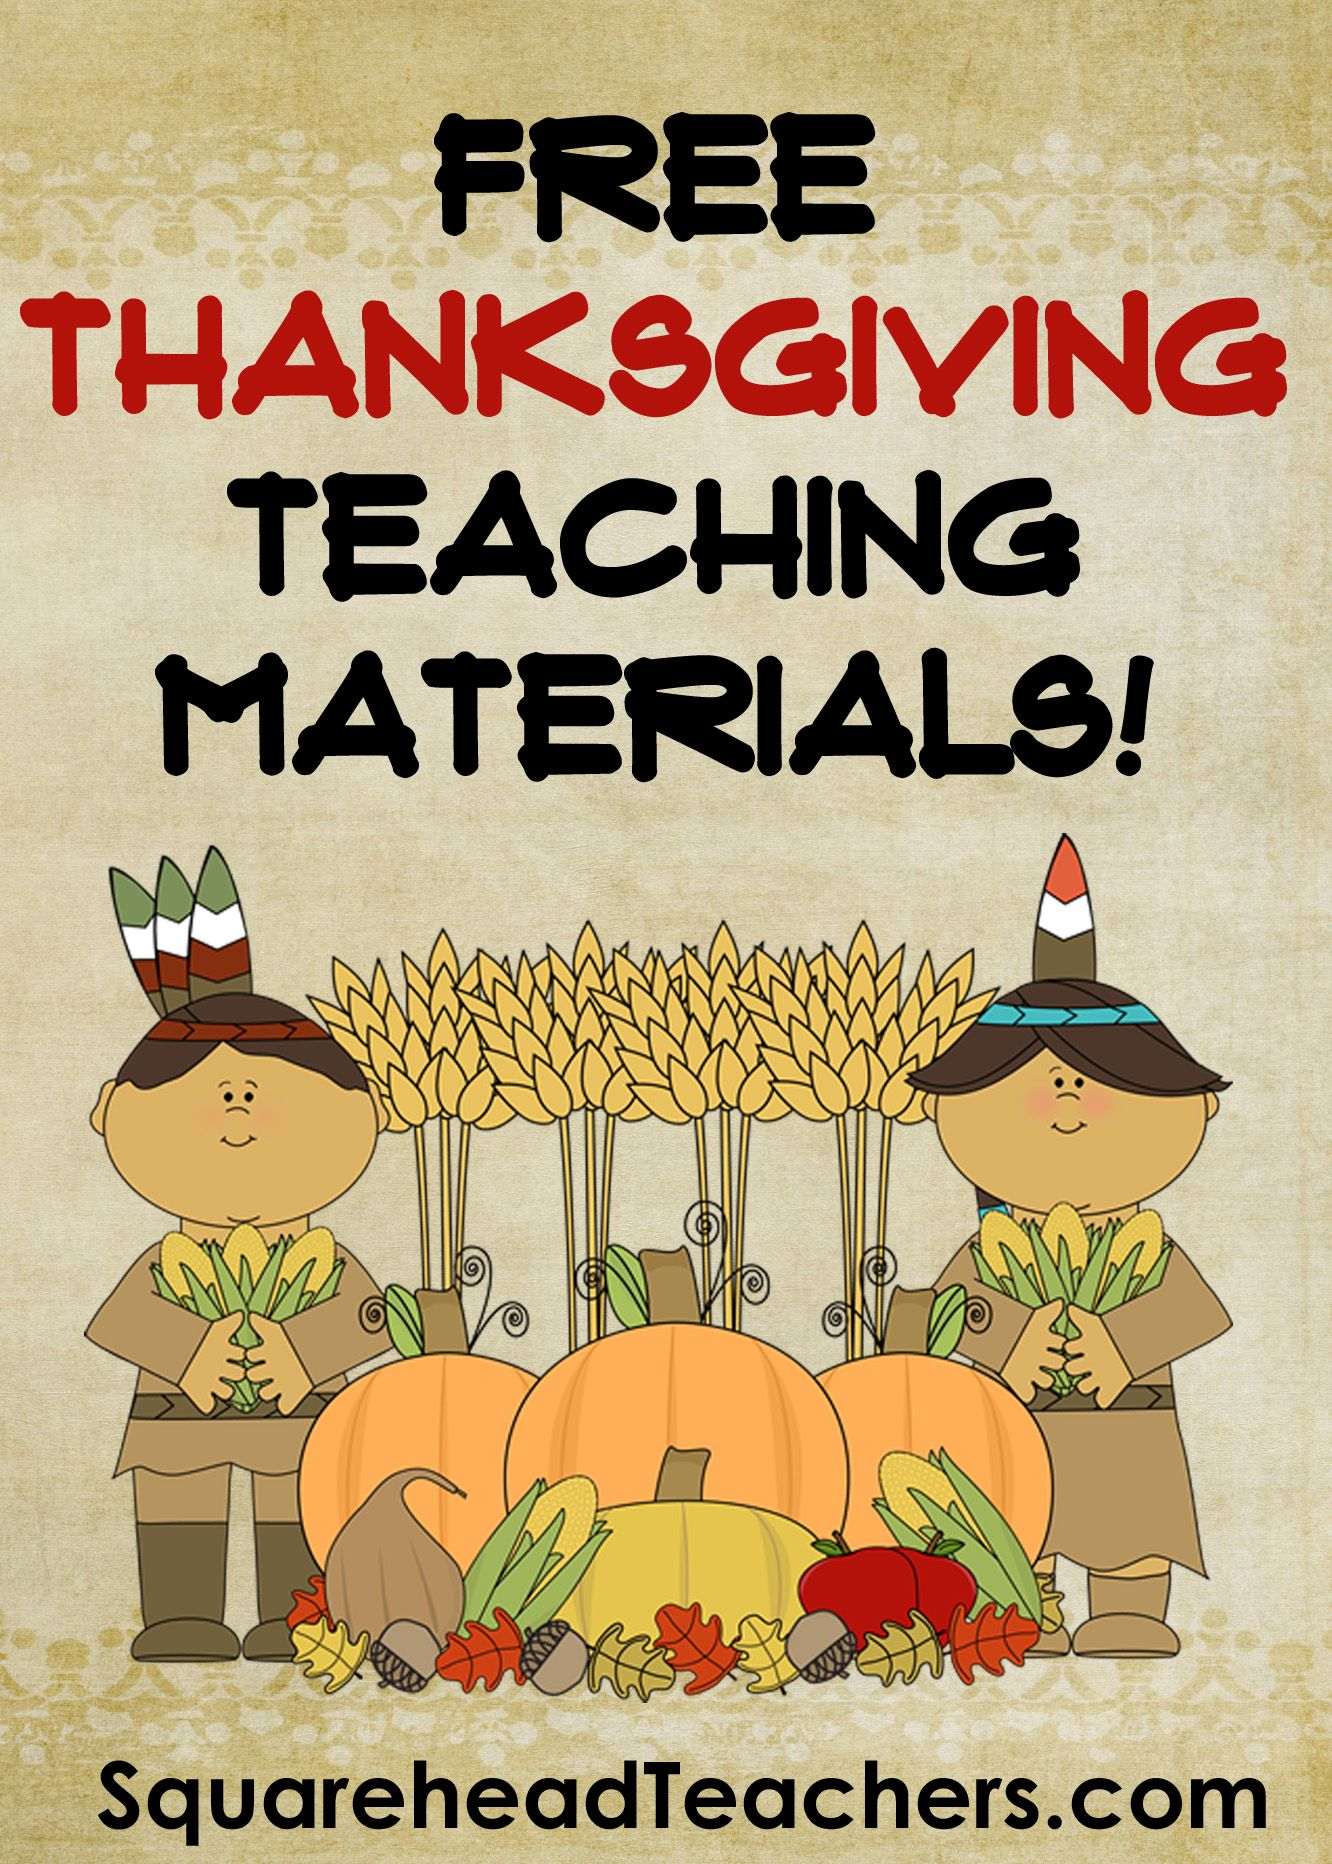 Squarehead Teachers Free Thanksgiving Printable